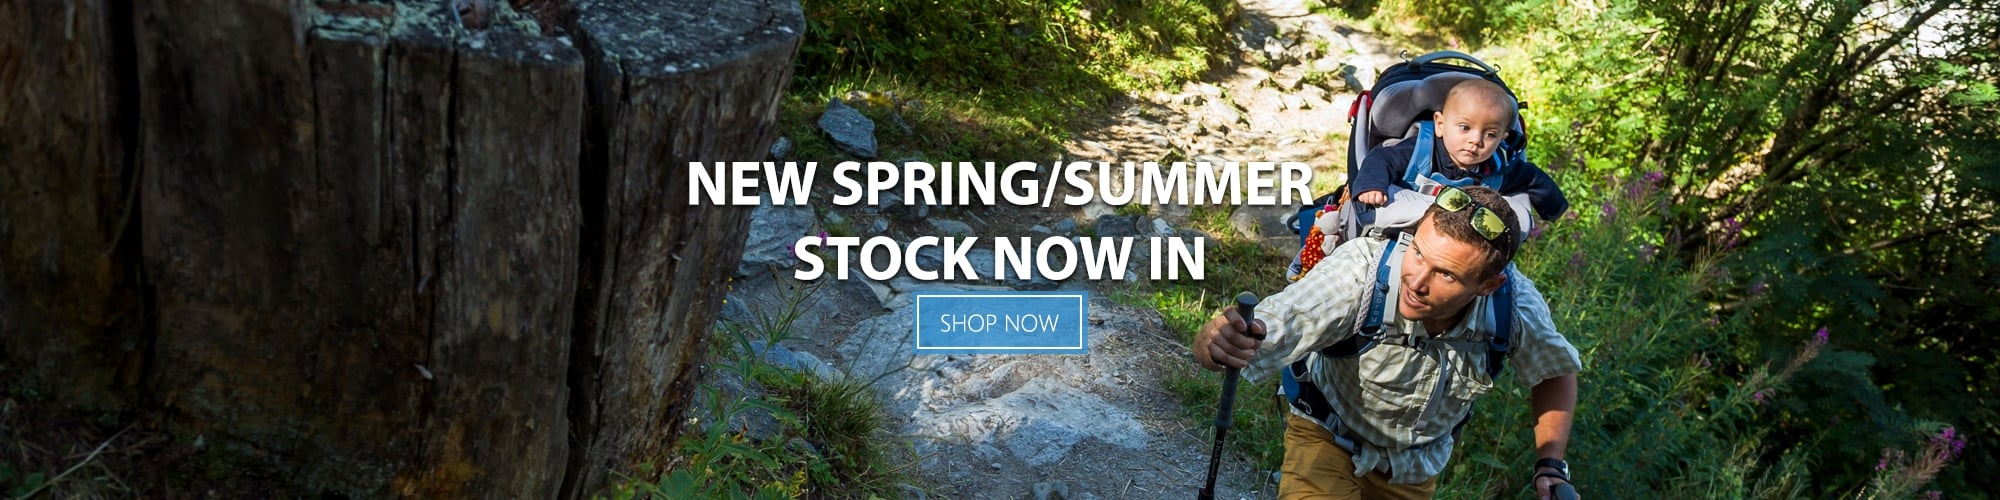 New Spring/Summer Stock Now In - 2017